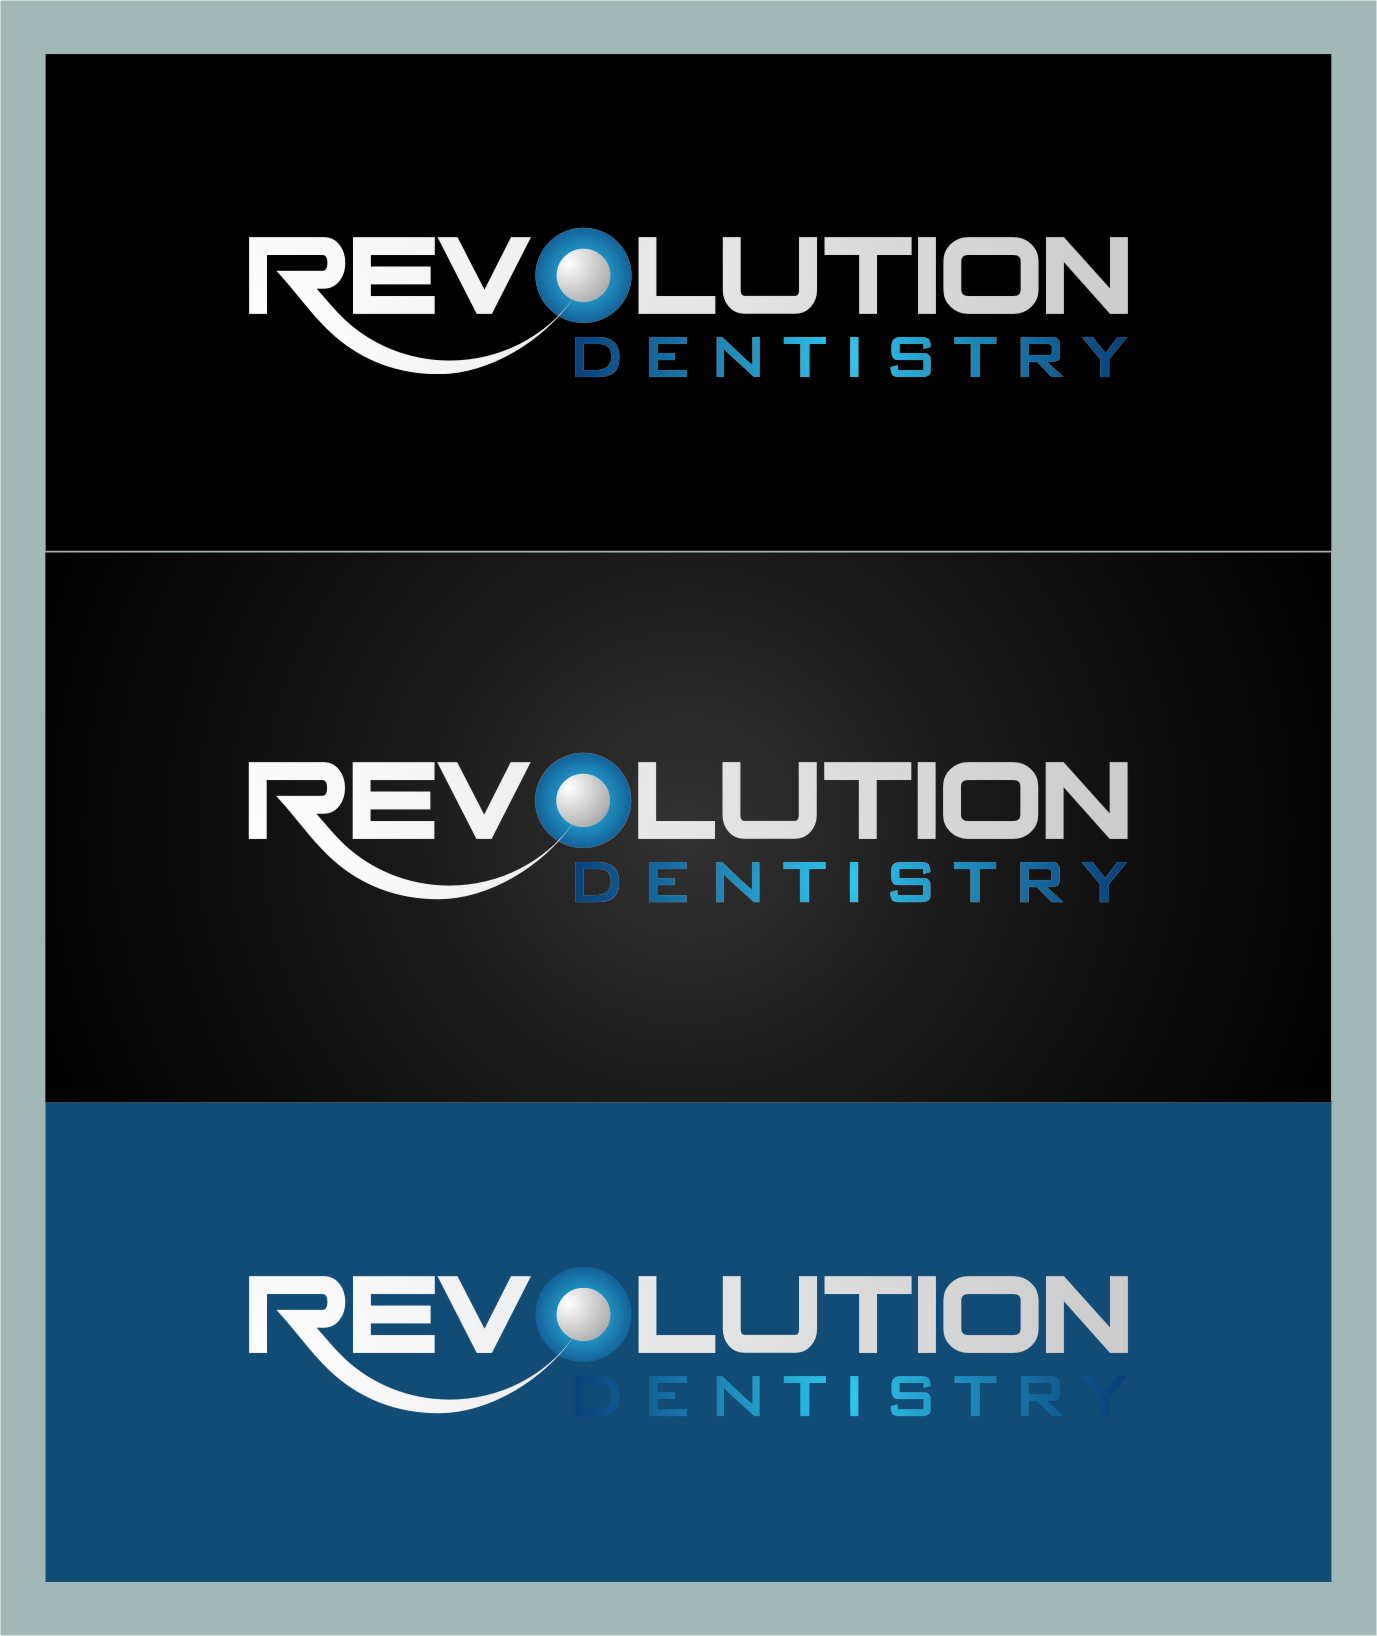 Logo Design by Ngepet_art - Entry No. 170 in the Logo Design Contest Artistic Logo Design for Revolution Dentistry.